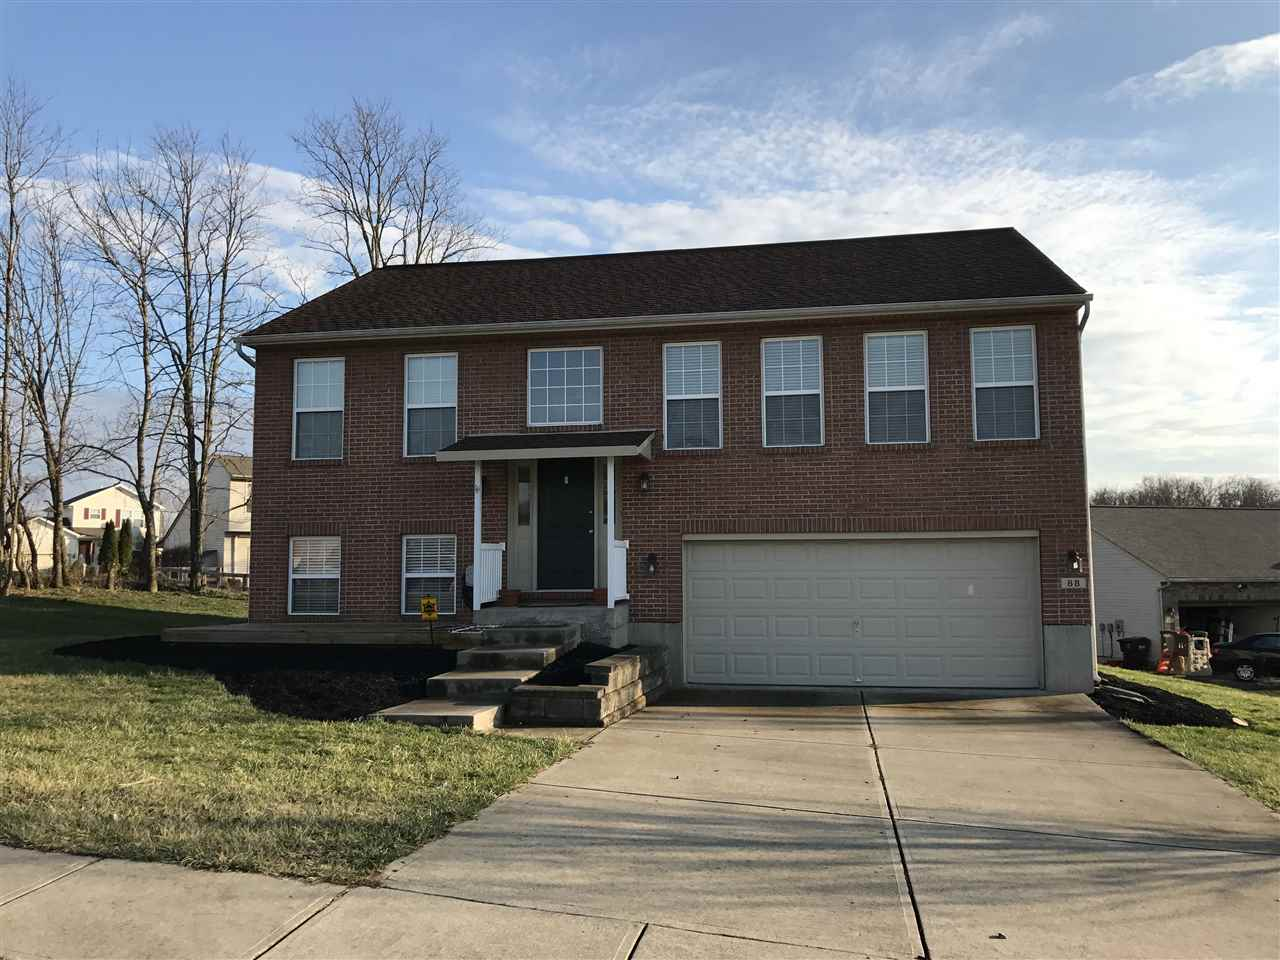 Photo 1 for 88 Bradley Dr Independence, KY 41051